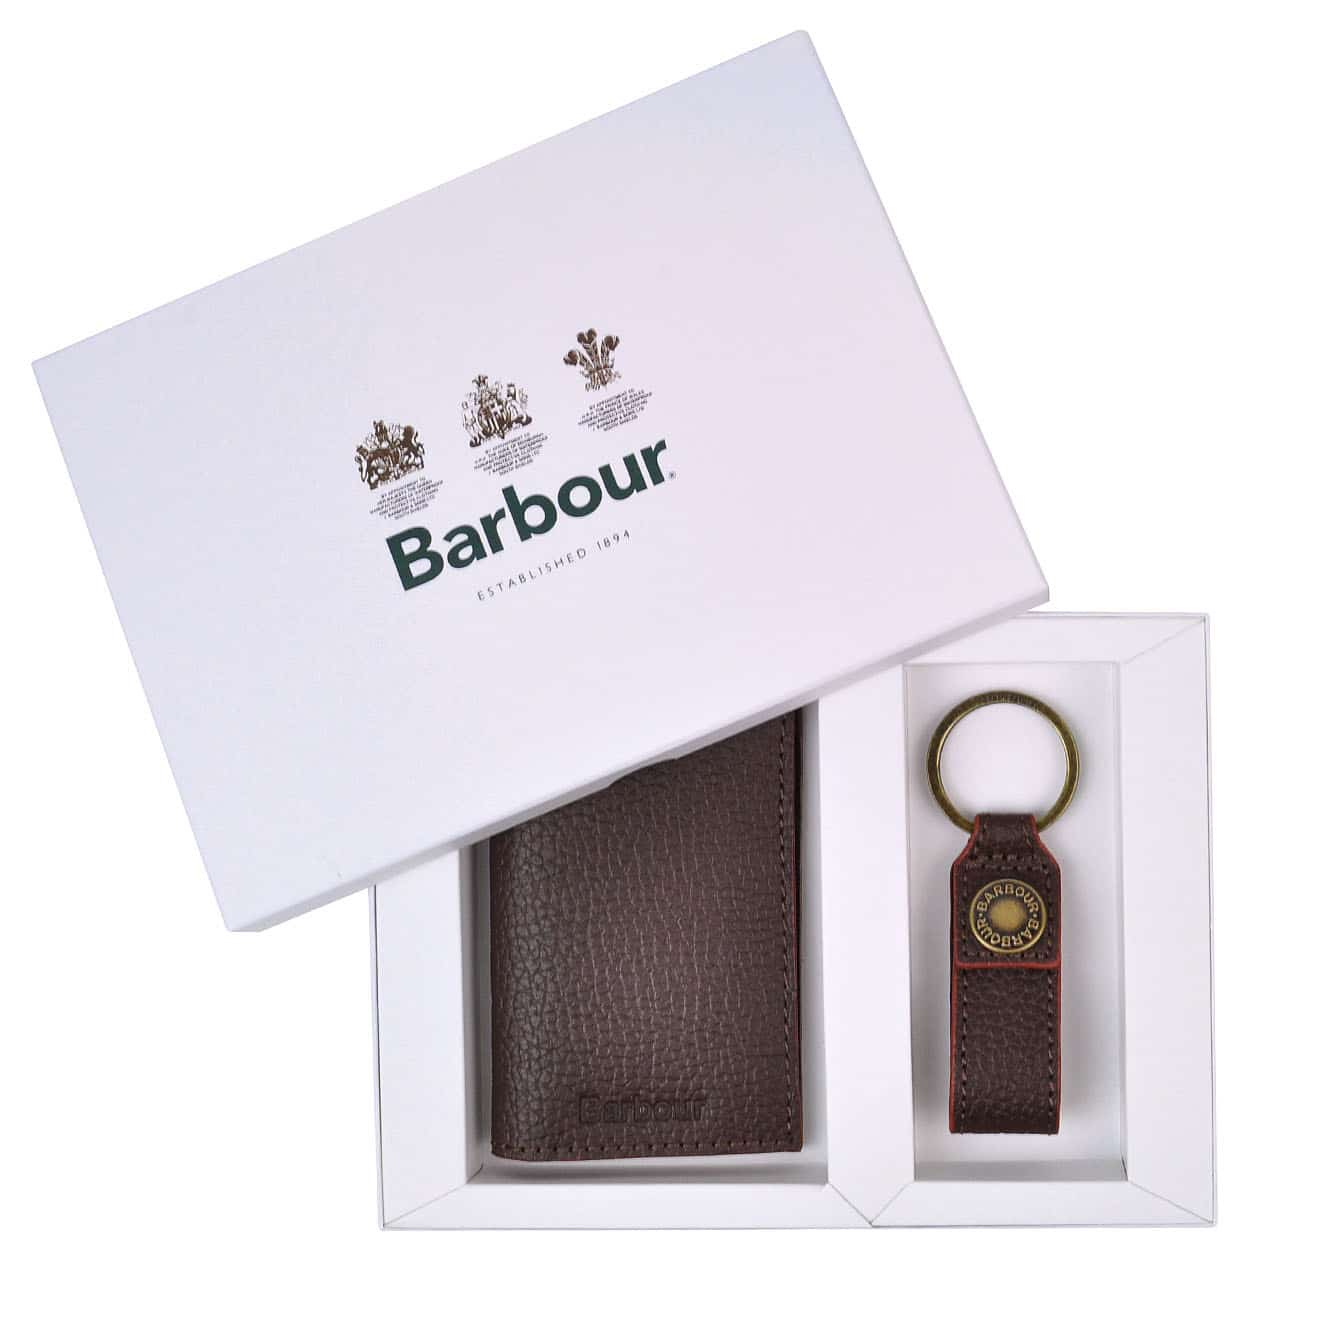 Barbour Grain Leather Wallet and Keyring Gift Set